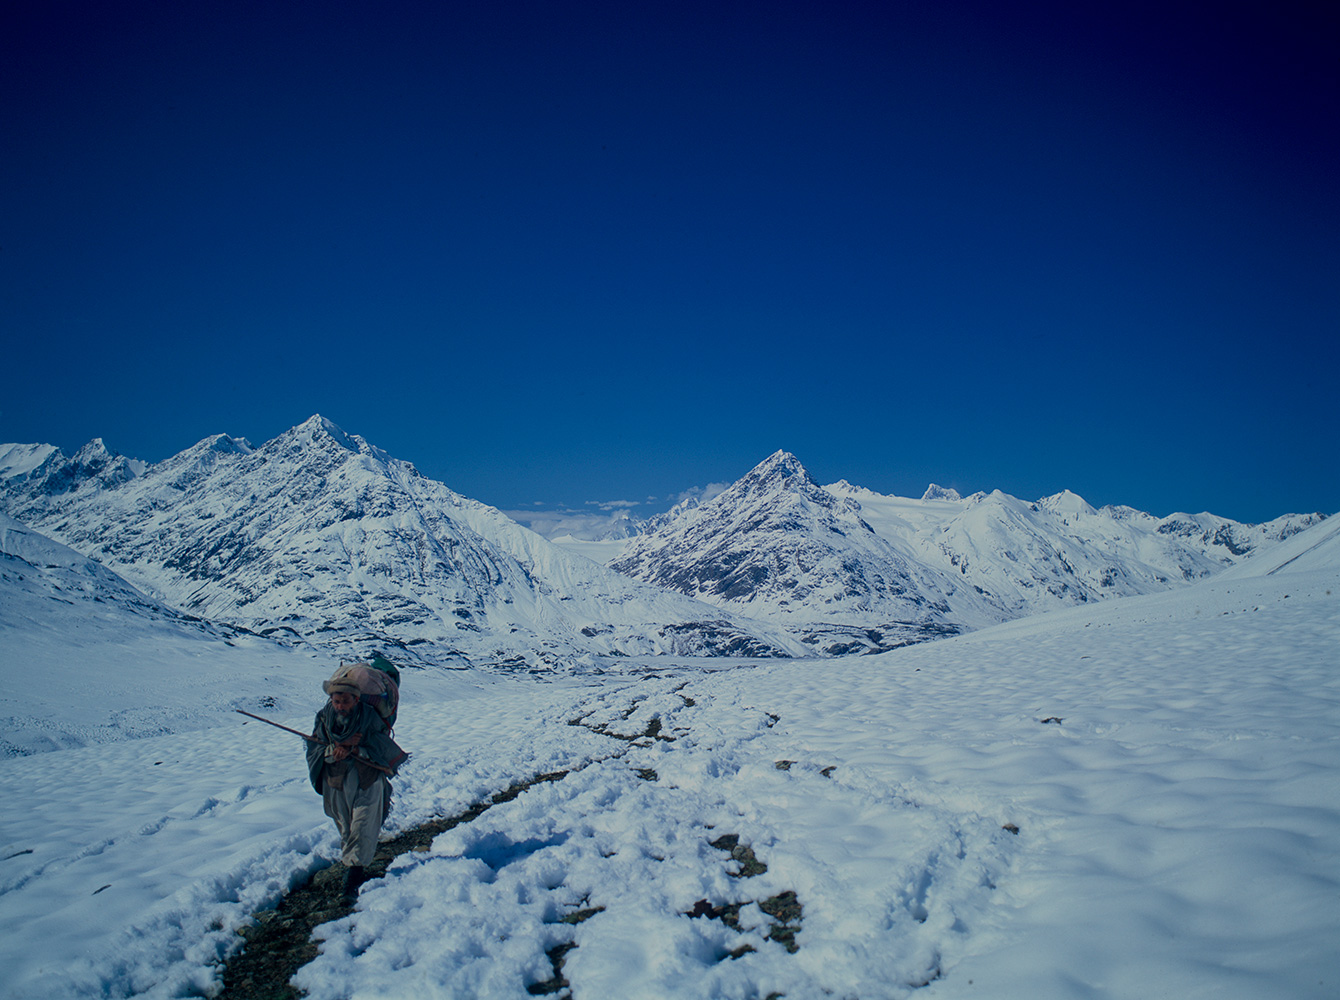 After a summer snowstorm, this porter is approaching the crest of the Karumbar at 4188m. The pass separates Chitral from Ishkoman, and is crowned with a spectacular turquoise lake.Bronica ETRSi, Fujis Velvia